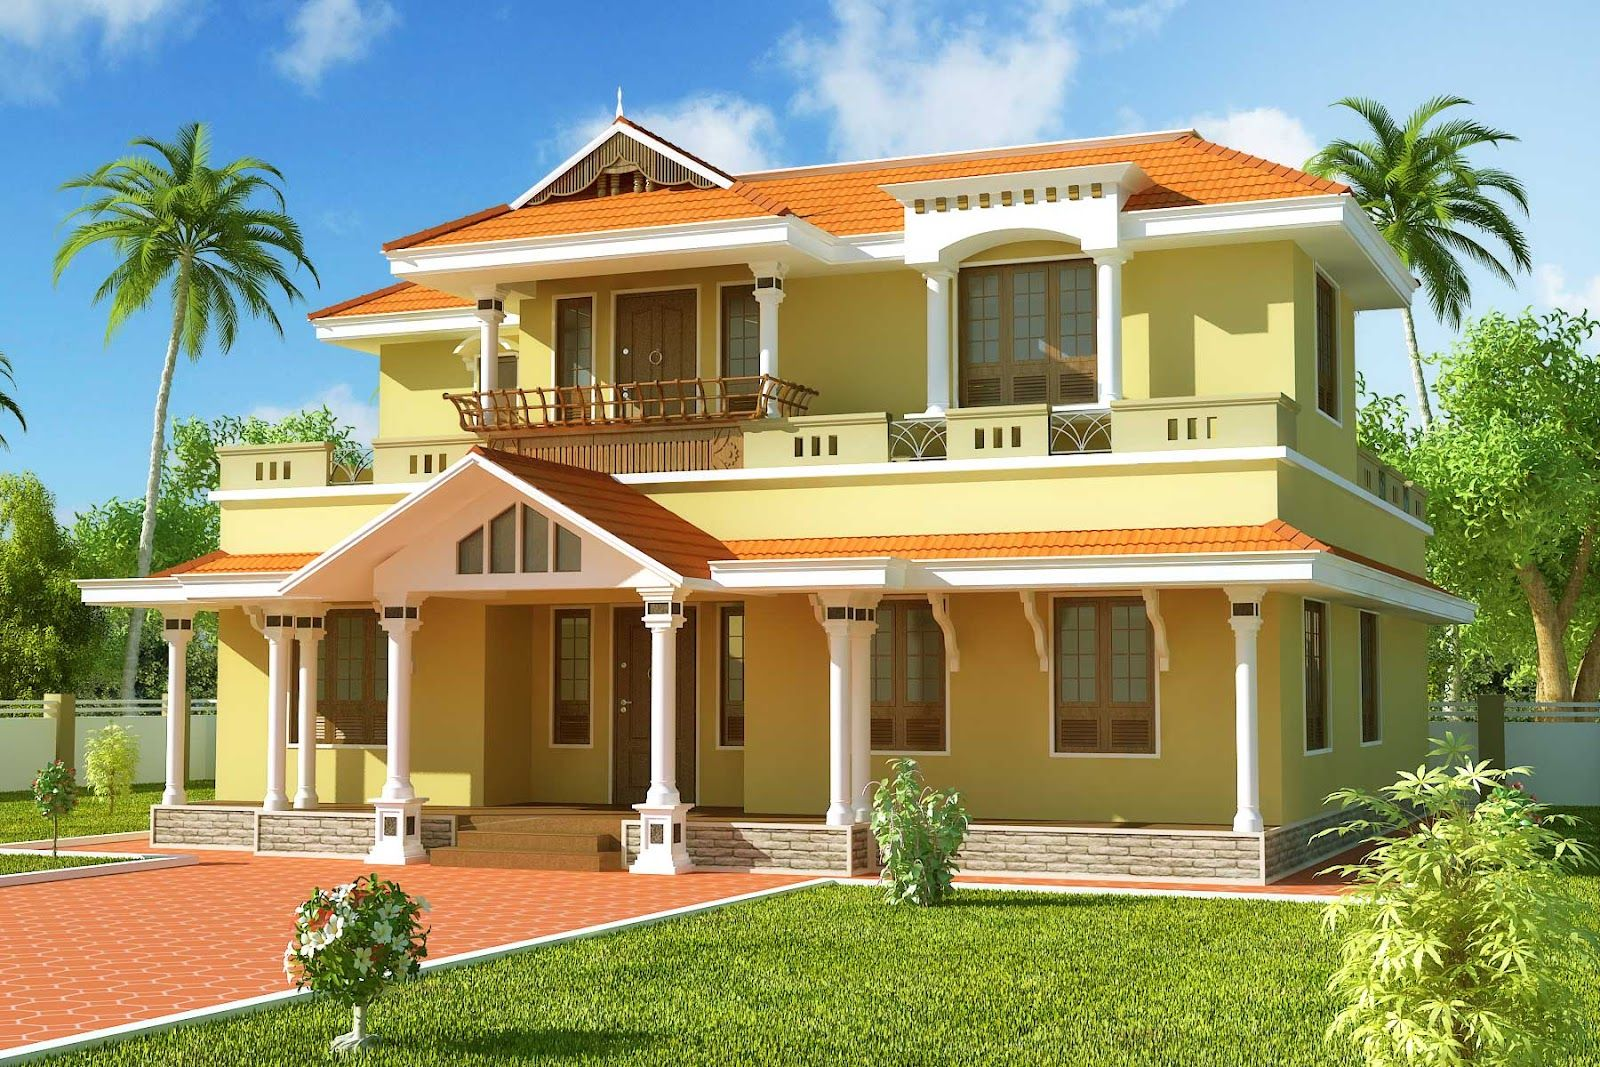 Kerala Home Design Do Check Out Keralahouseplanner Com